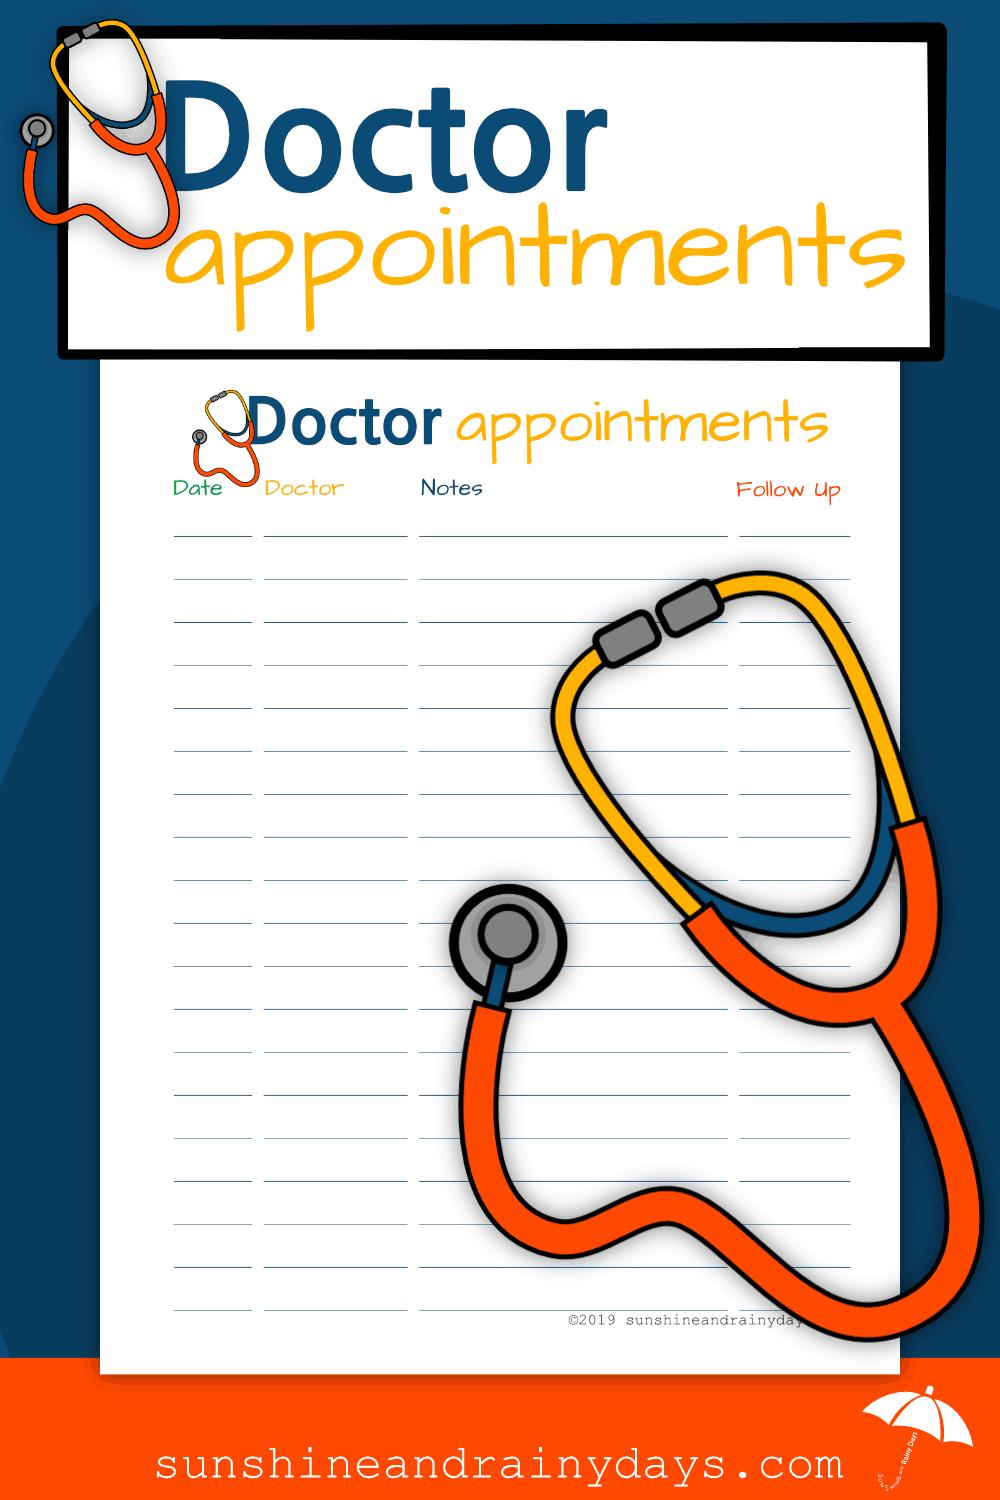 With the Doctor Appointments Free Printable, there is no need to call the doctor's office to see when your last appointment was. You have the information you need right in your very own Medical Binder! Medical Binder Printables   Doctor Appointment Tracker   Medical Printables   #medicalprintables #medicalbinder #SARD